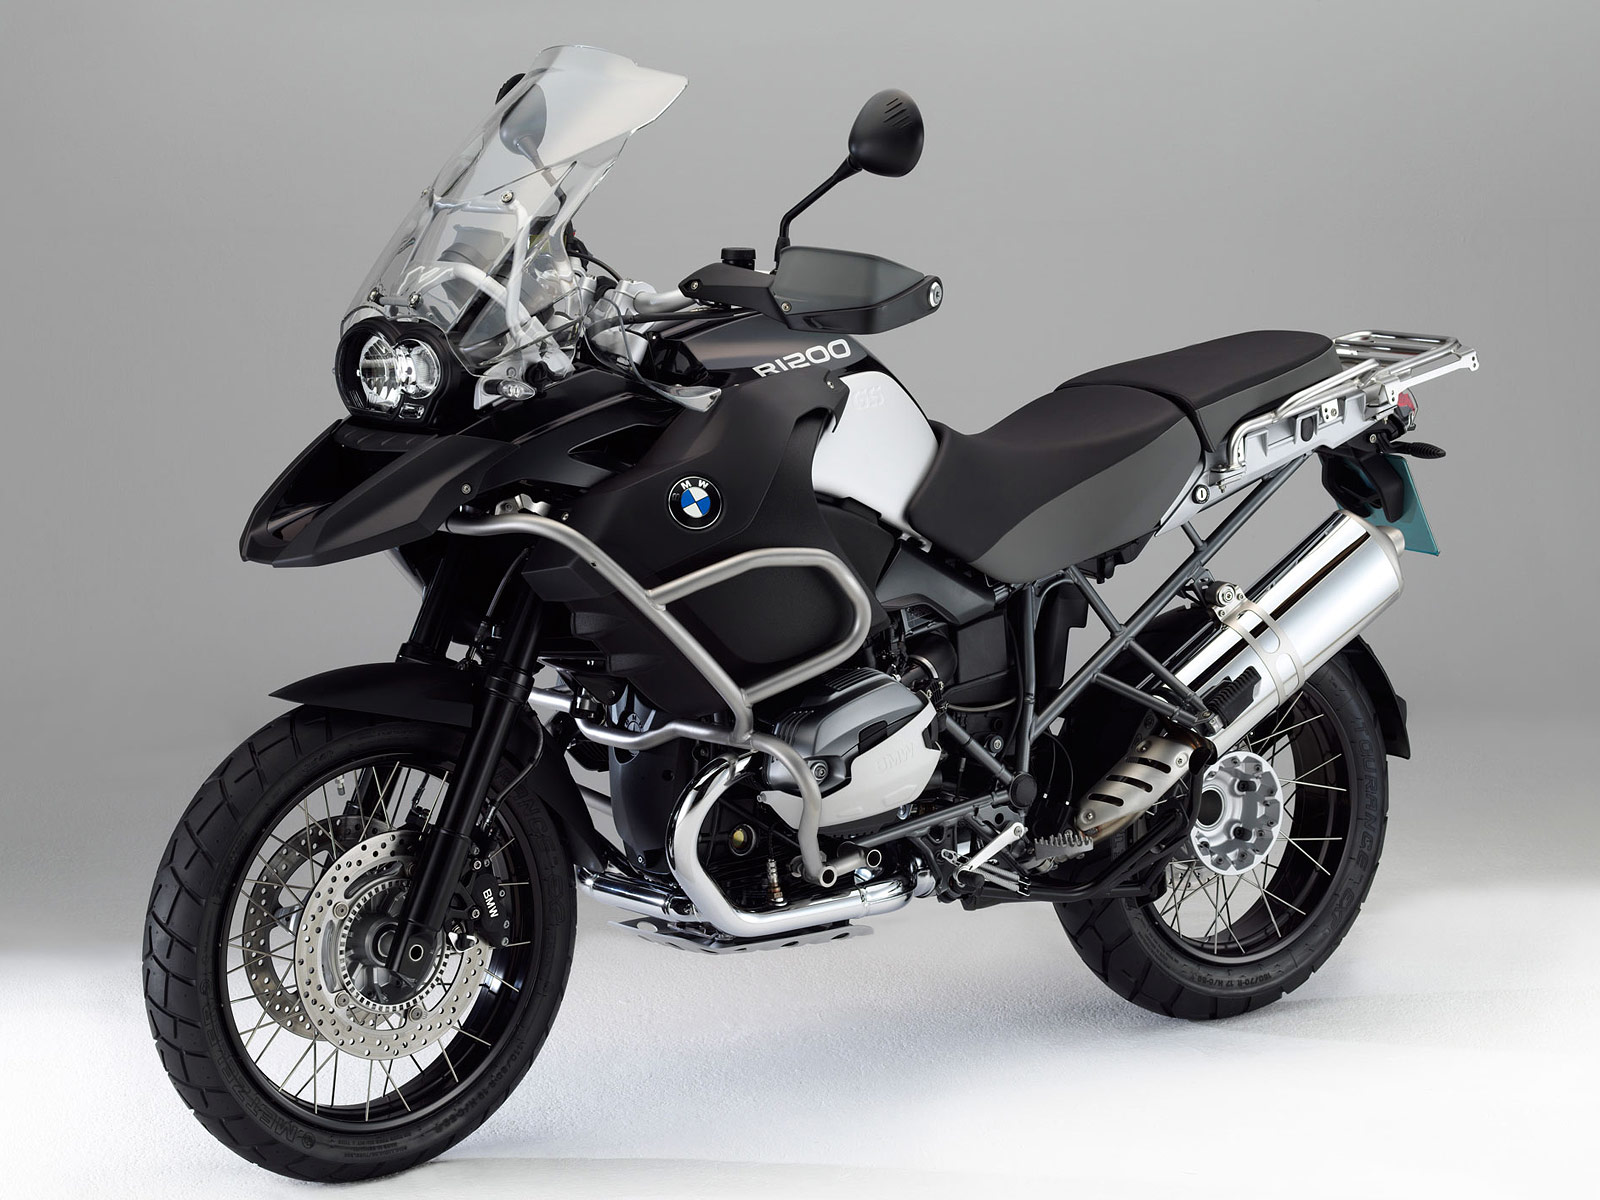 http://1.bp.blogspot.com/-bq5hDH6xv84/TouSiAvxyvI/AAAAAAAAFBs/gmHWsMX_fDk/s1600/2012_BMW_R1200GS_Adventure_Triple_Black_desktop-wallpapers_3.jpg